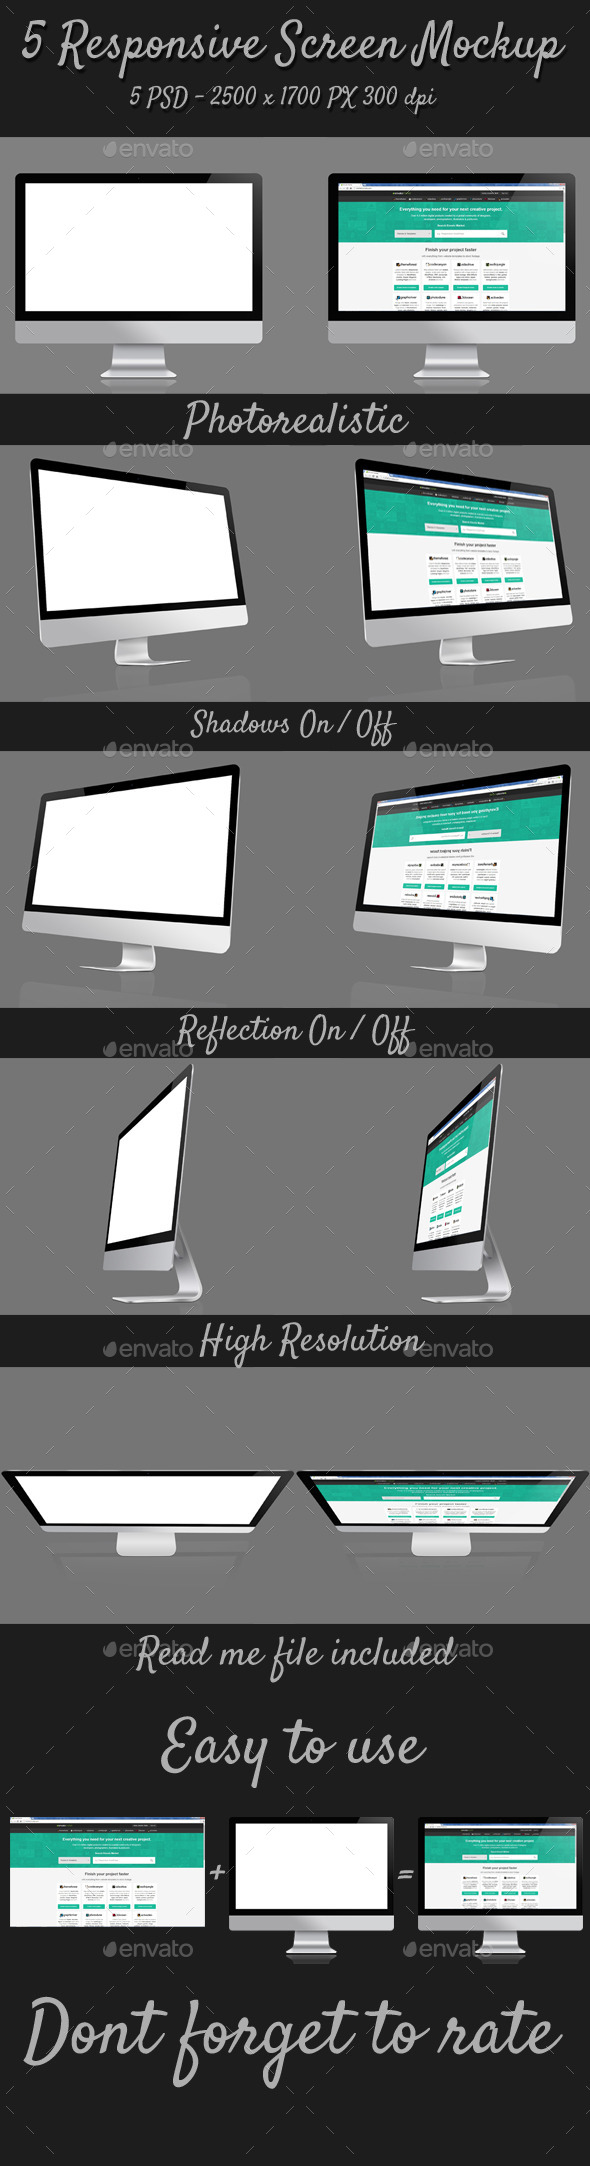 5 Responsive Screen Mockup - Monitors Displays